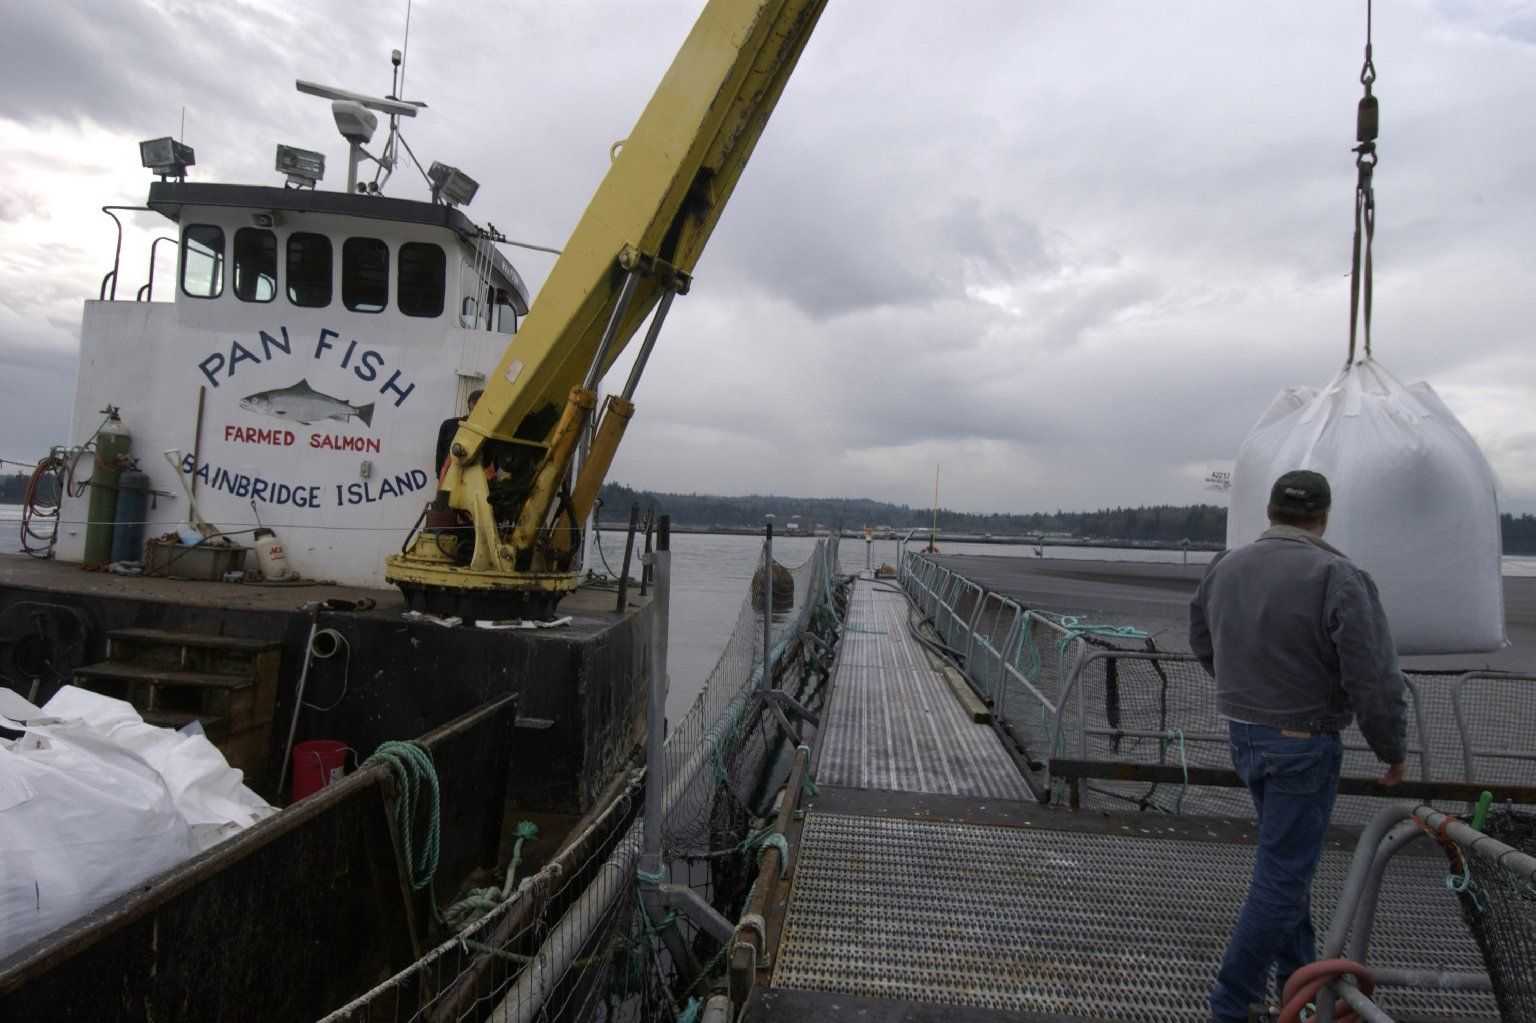 Employees at Pan Fish USA, a salmon fish farm, unload fish feed in Bainbridge Island, Wash. Photo: Ron Wurzer/Getty Images